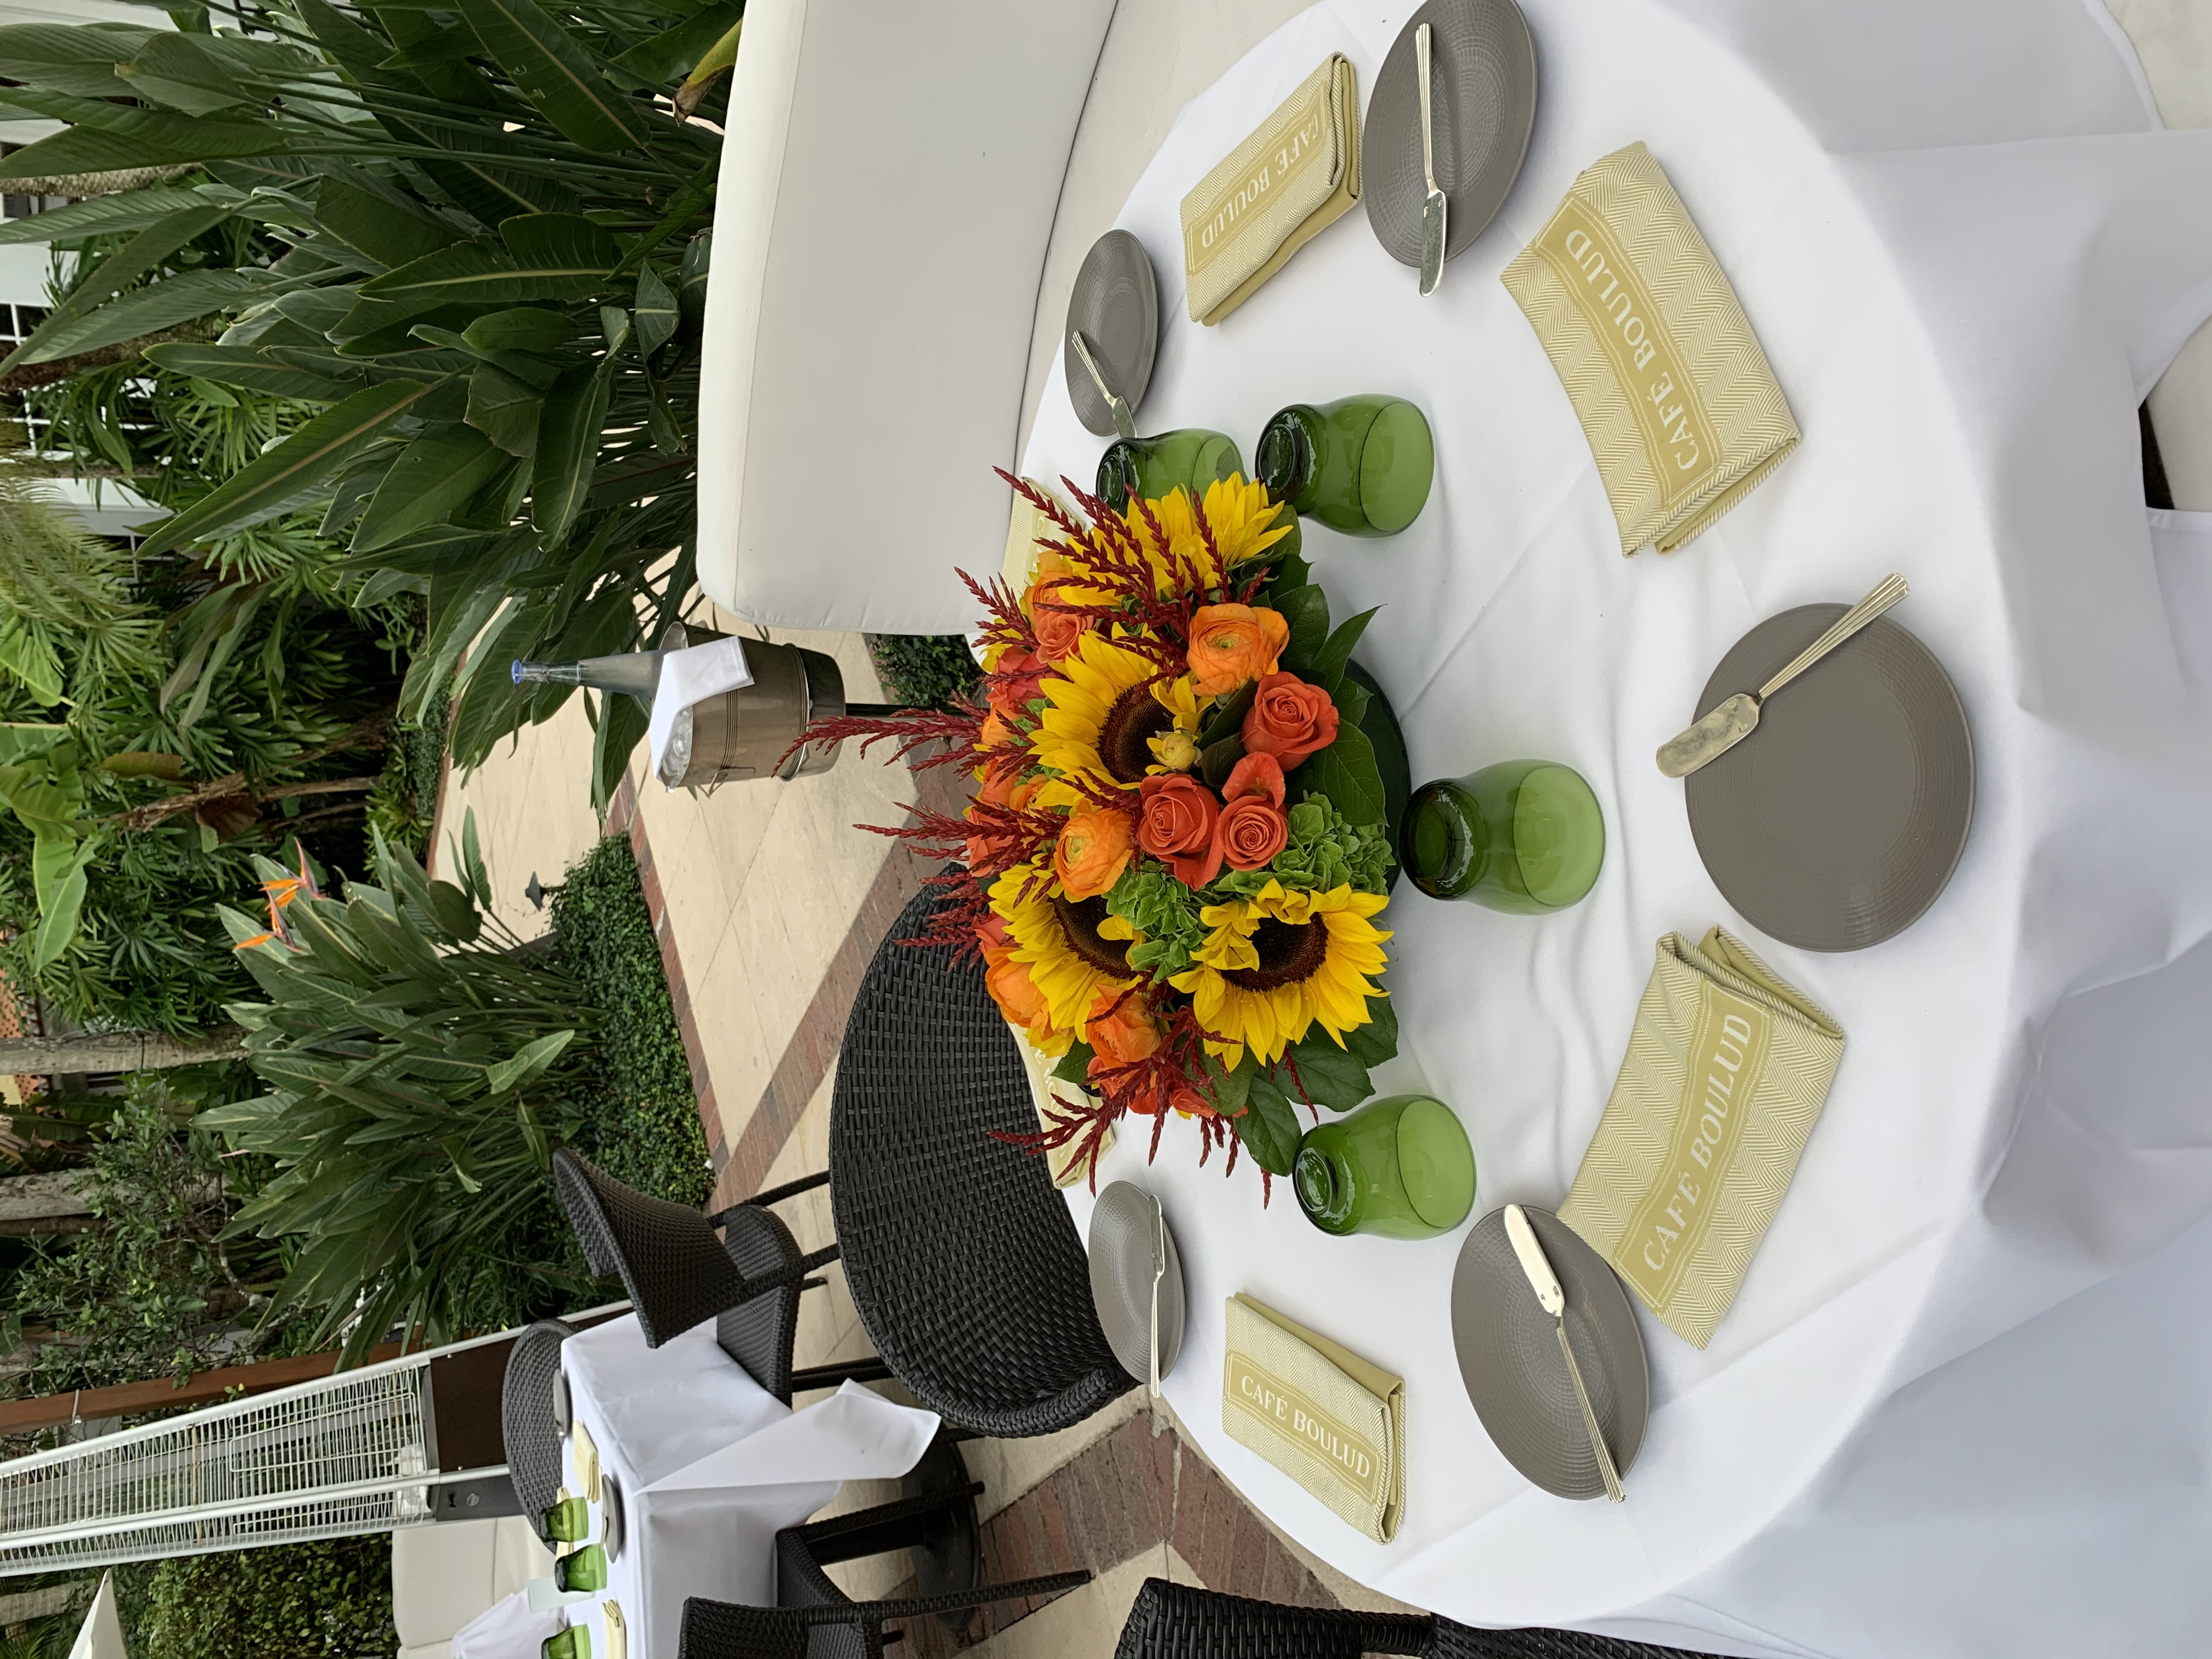 Magnificent Dining Centerpiece with Sunflowers! Velene's Floral